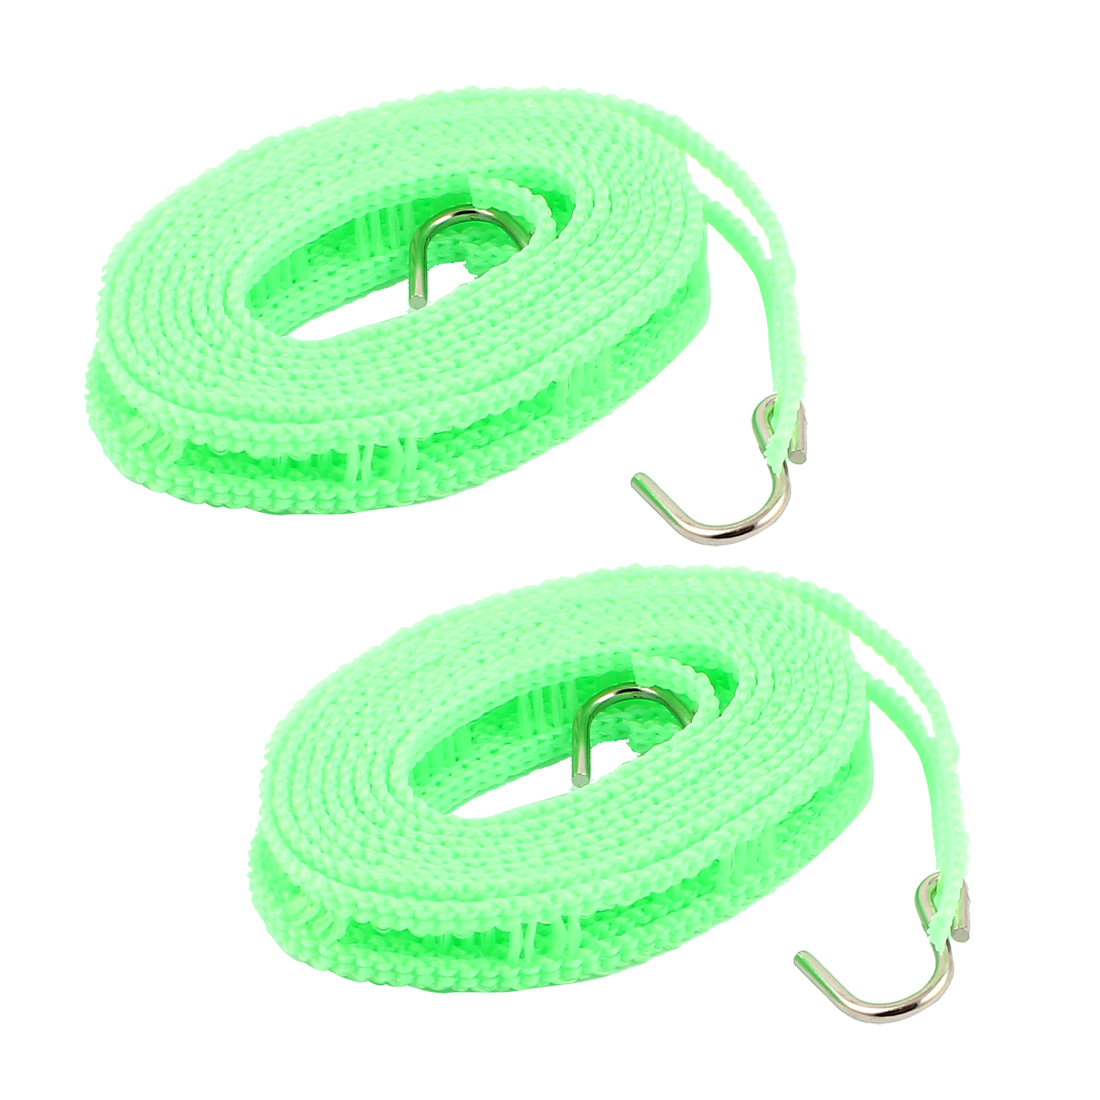 Camping Outdoor Laundry Plastic Clothesline Clothes Hanger Line Rope w Metal Hooks 2M Green 2pcs